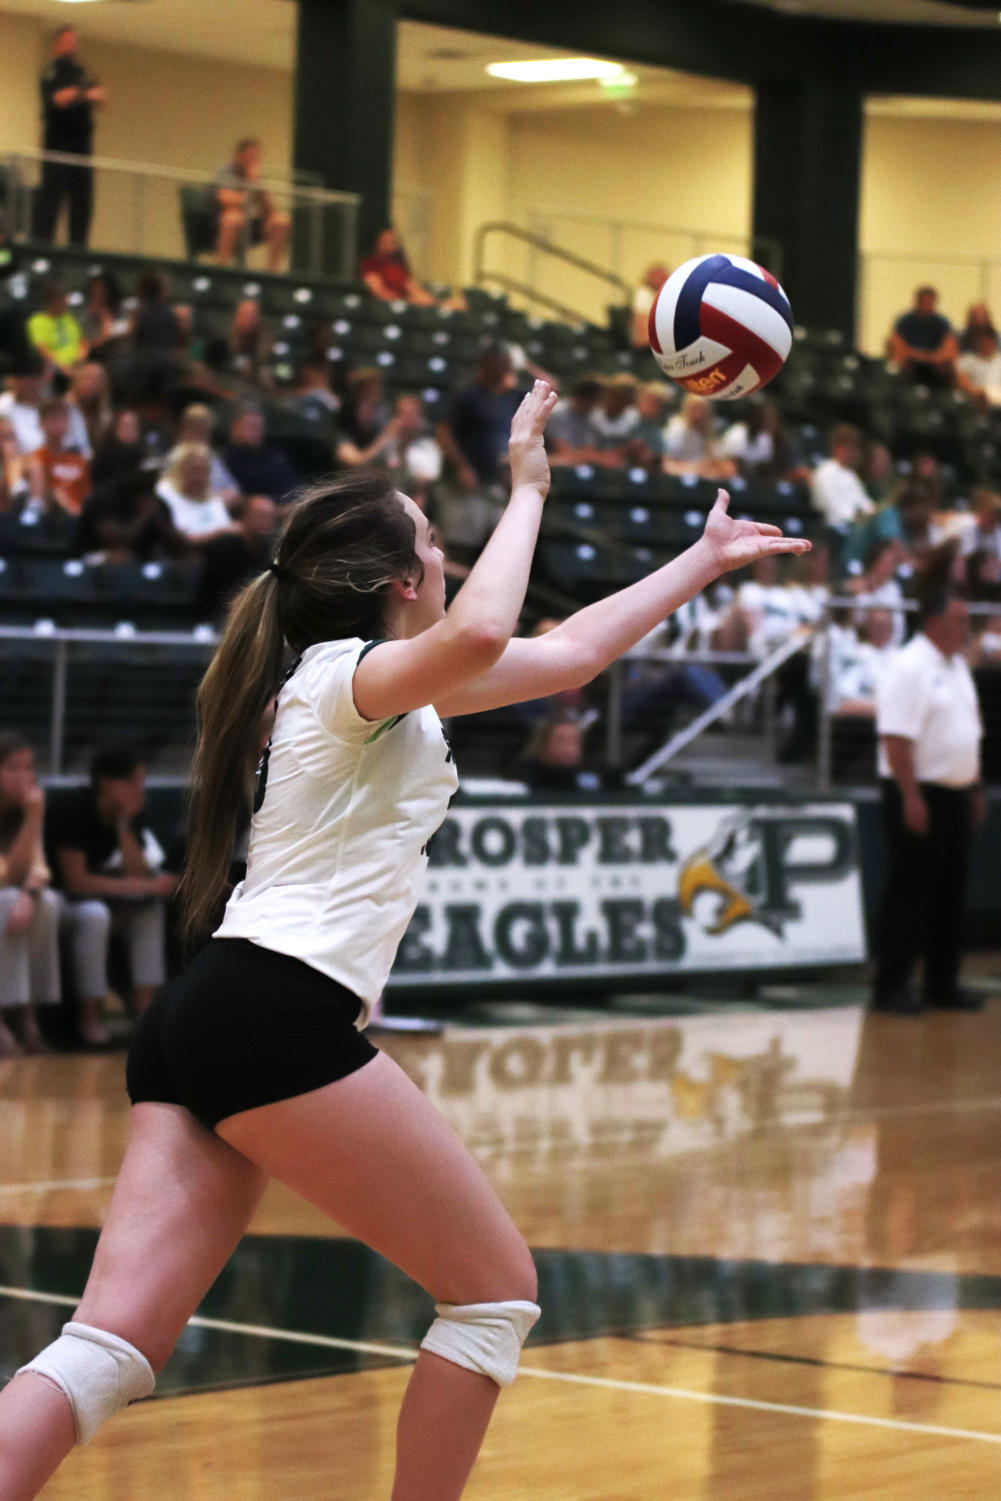 Nikki+Steinheiser+serves+the+ball+during+a+game+against+Denton+Guyer.+They+won+the+game+with+a+record+of+3-2+Friday+night.+They+are+currently+ranked+No.+11+in+the+nation.+